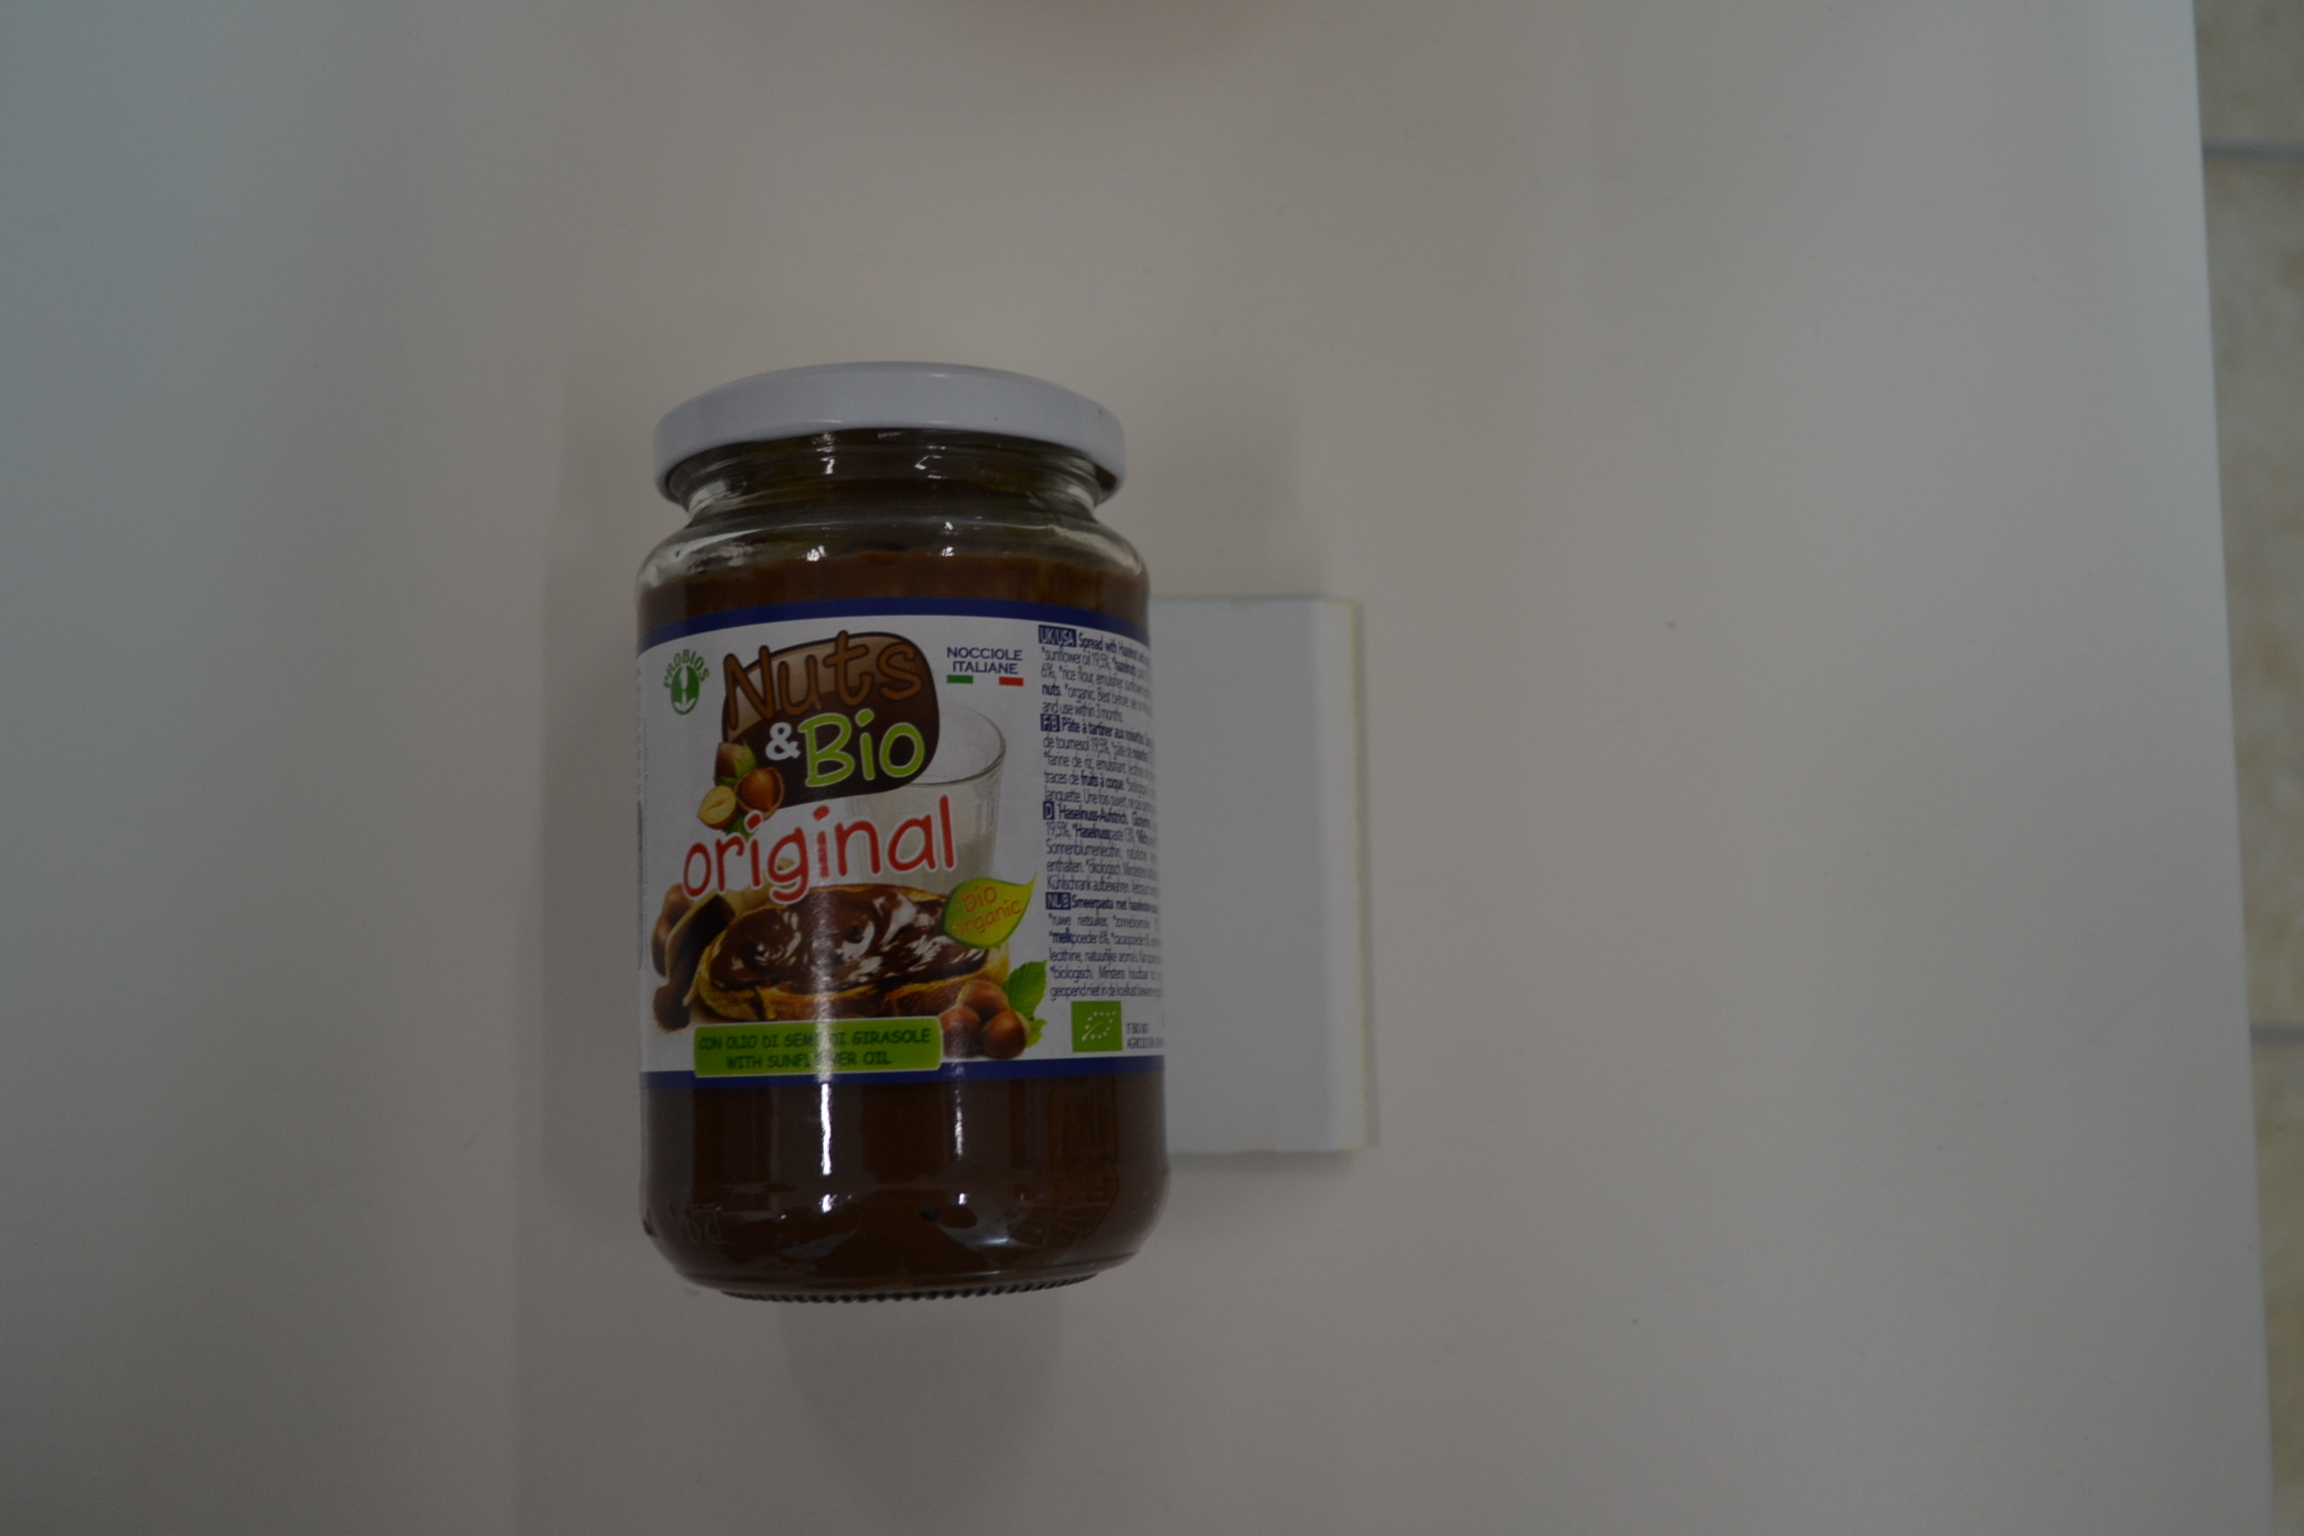 Nutella NUTS & BIO (ORIGINAL) € 7,10